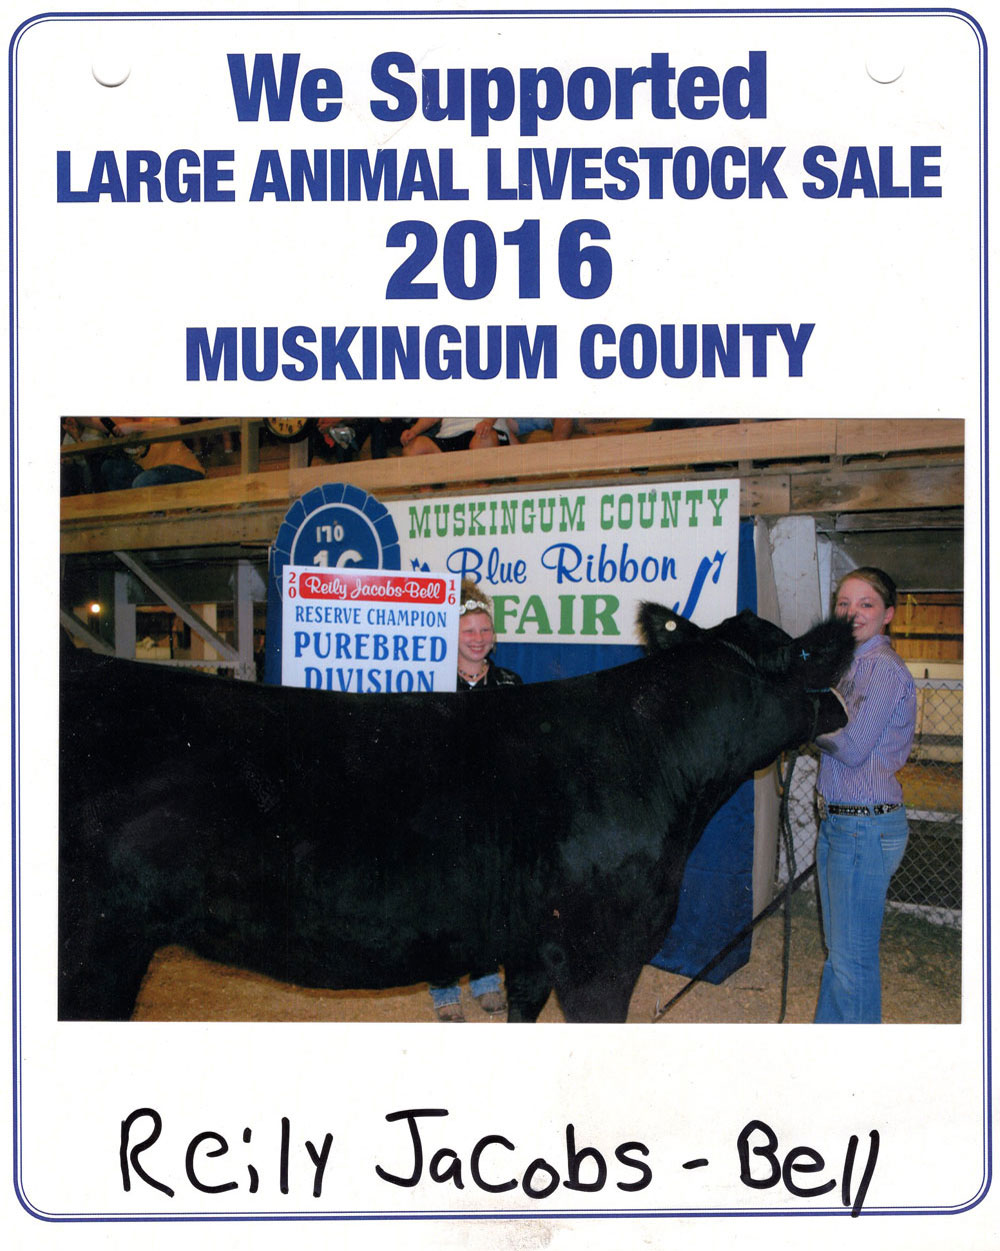 Zemba Bros Community Support Muskingum County Fair Live Stock Auction 2